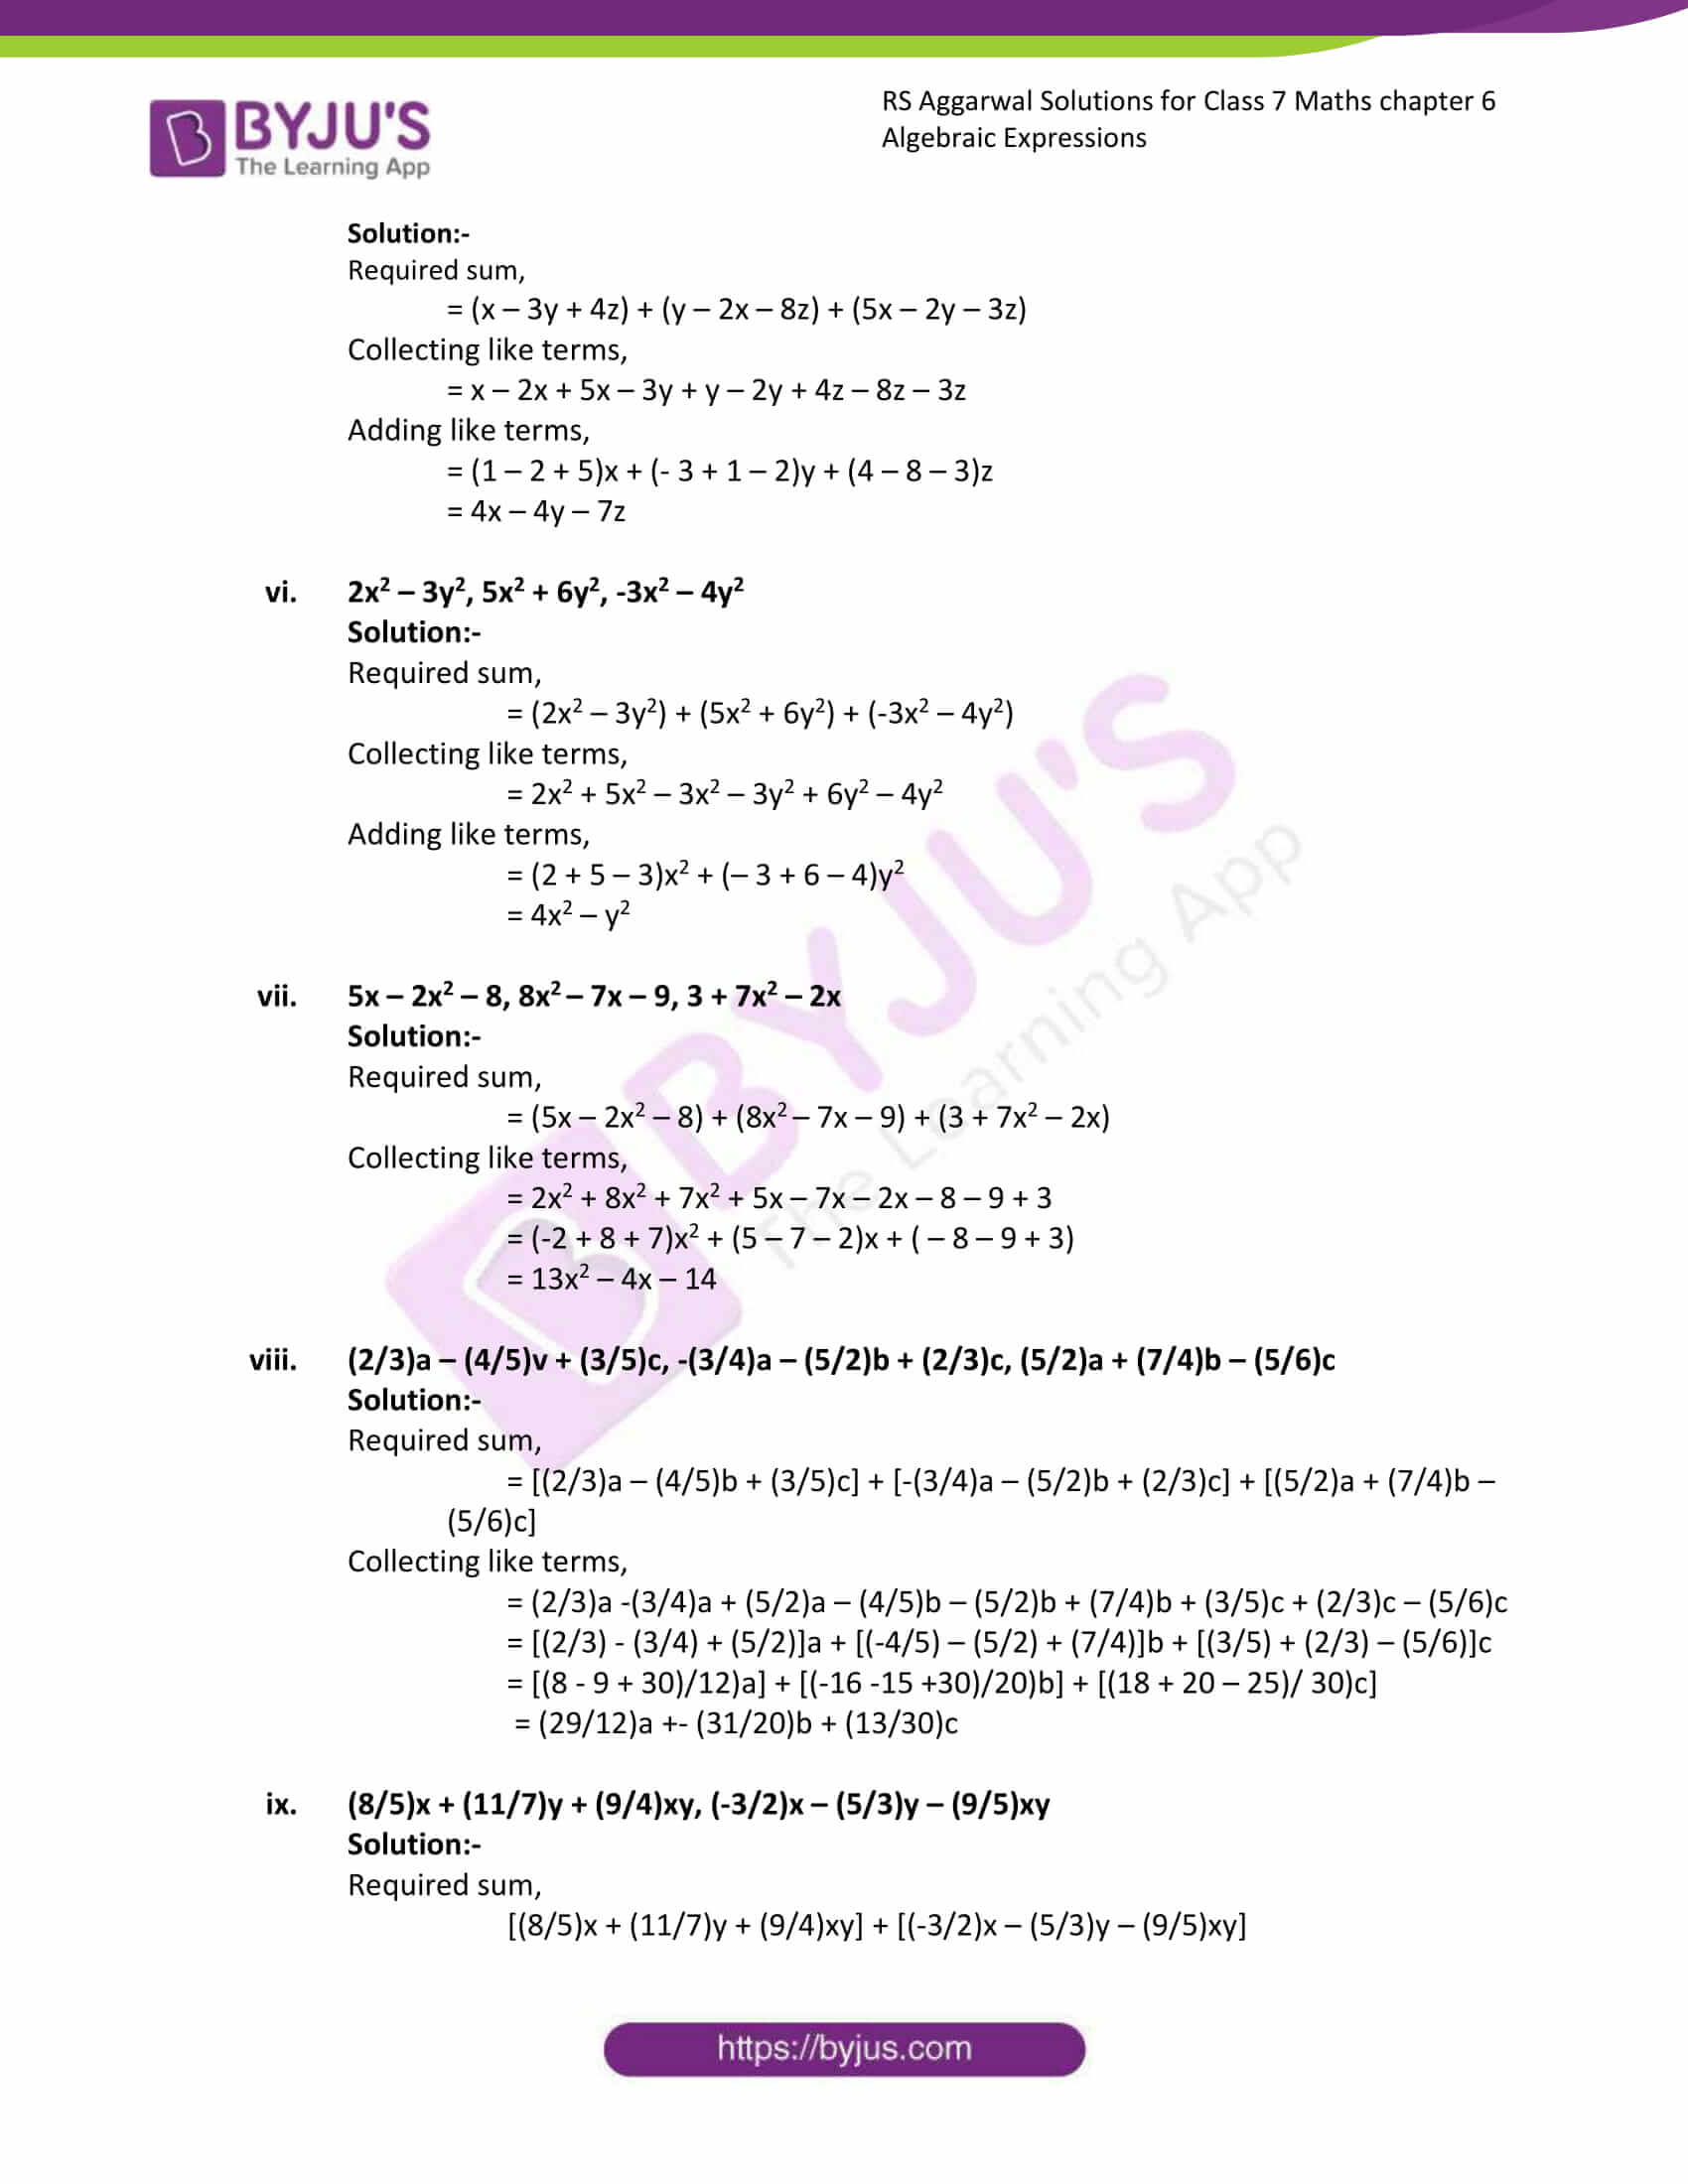 rs aggarwal solution class 7 maths chapter 6